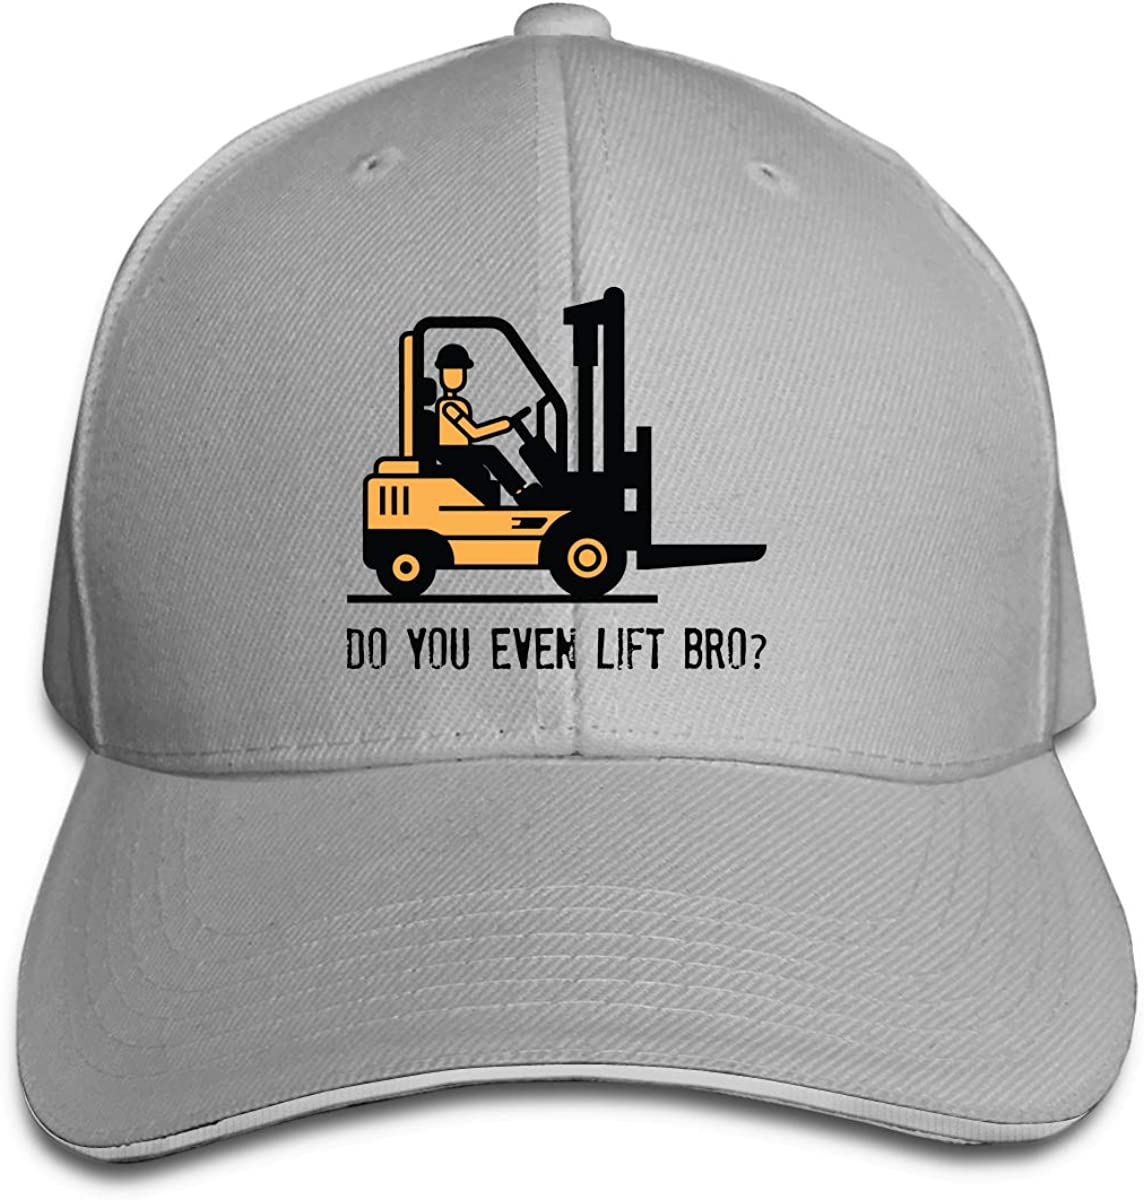 Even Lift Bro Fork Lift Classic Adjustable Cotton Baseball Caps Trucker Driver Hat Outdoor Cap Gray